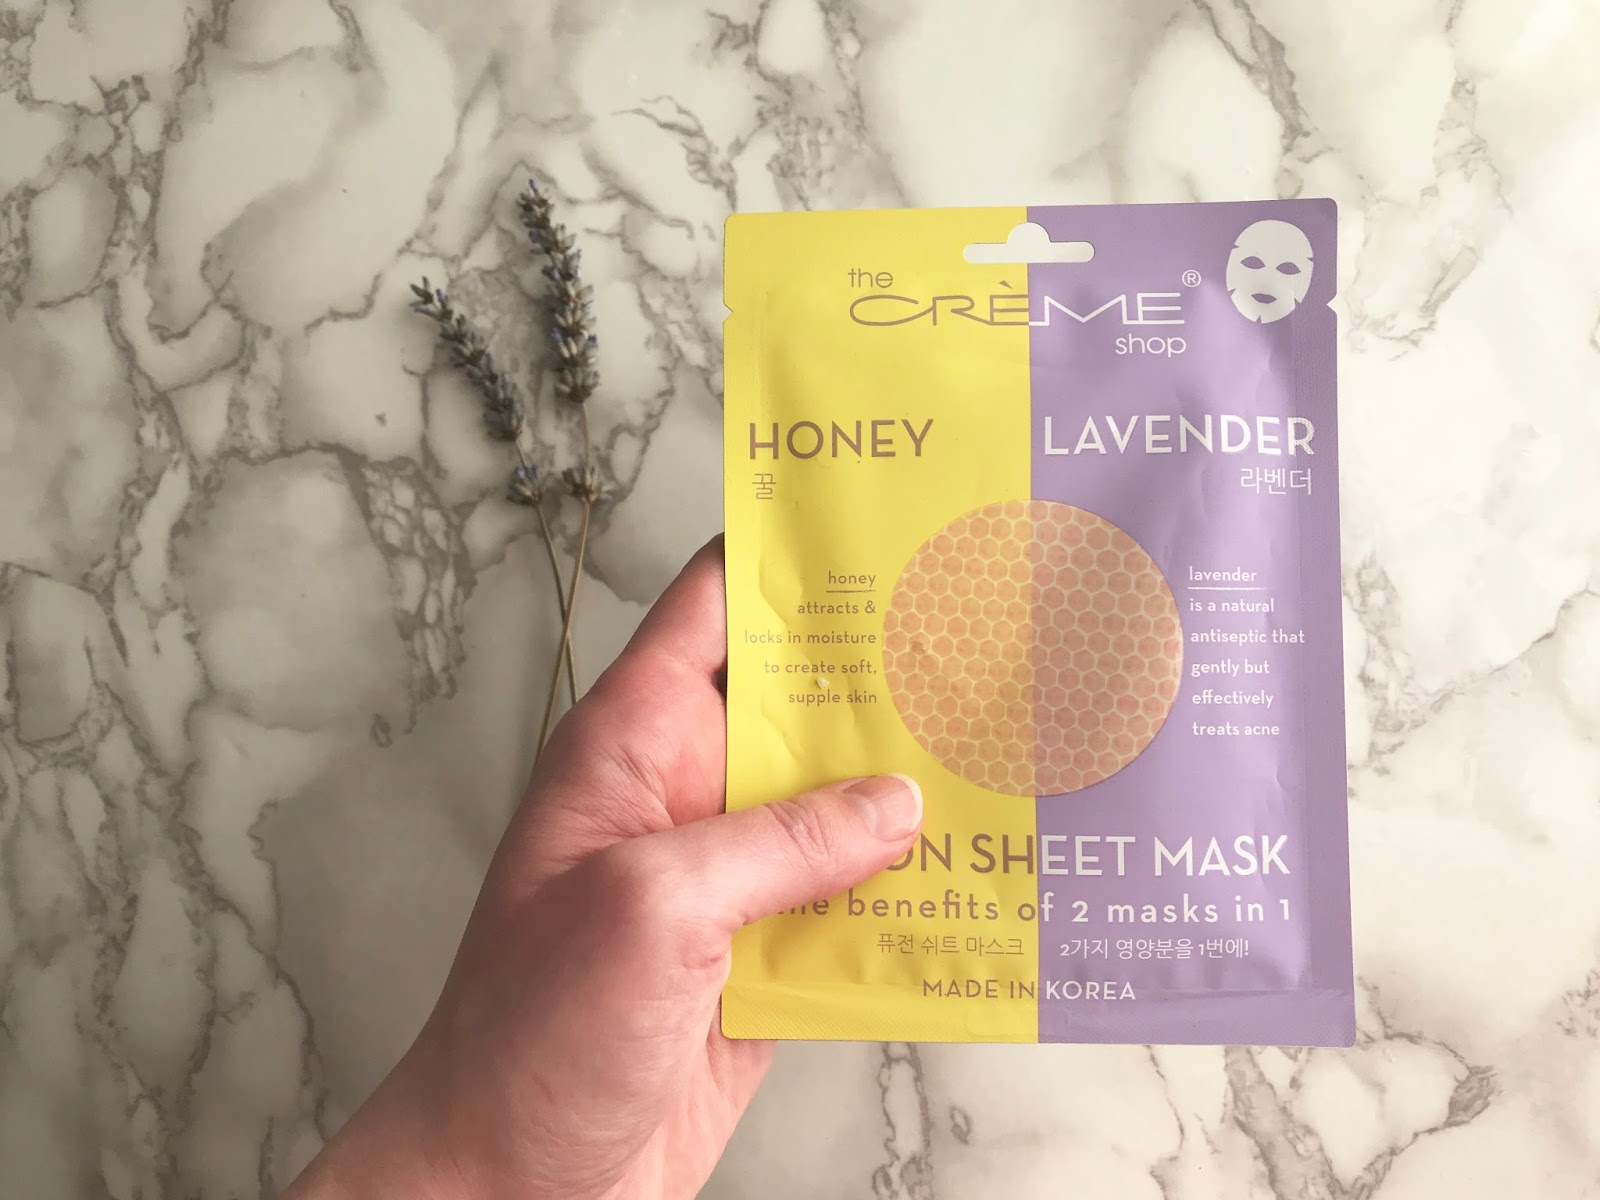 the creme shop honey & lavender fusion sheet mask review